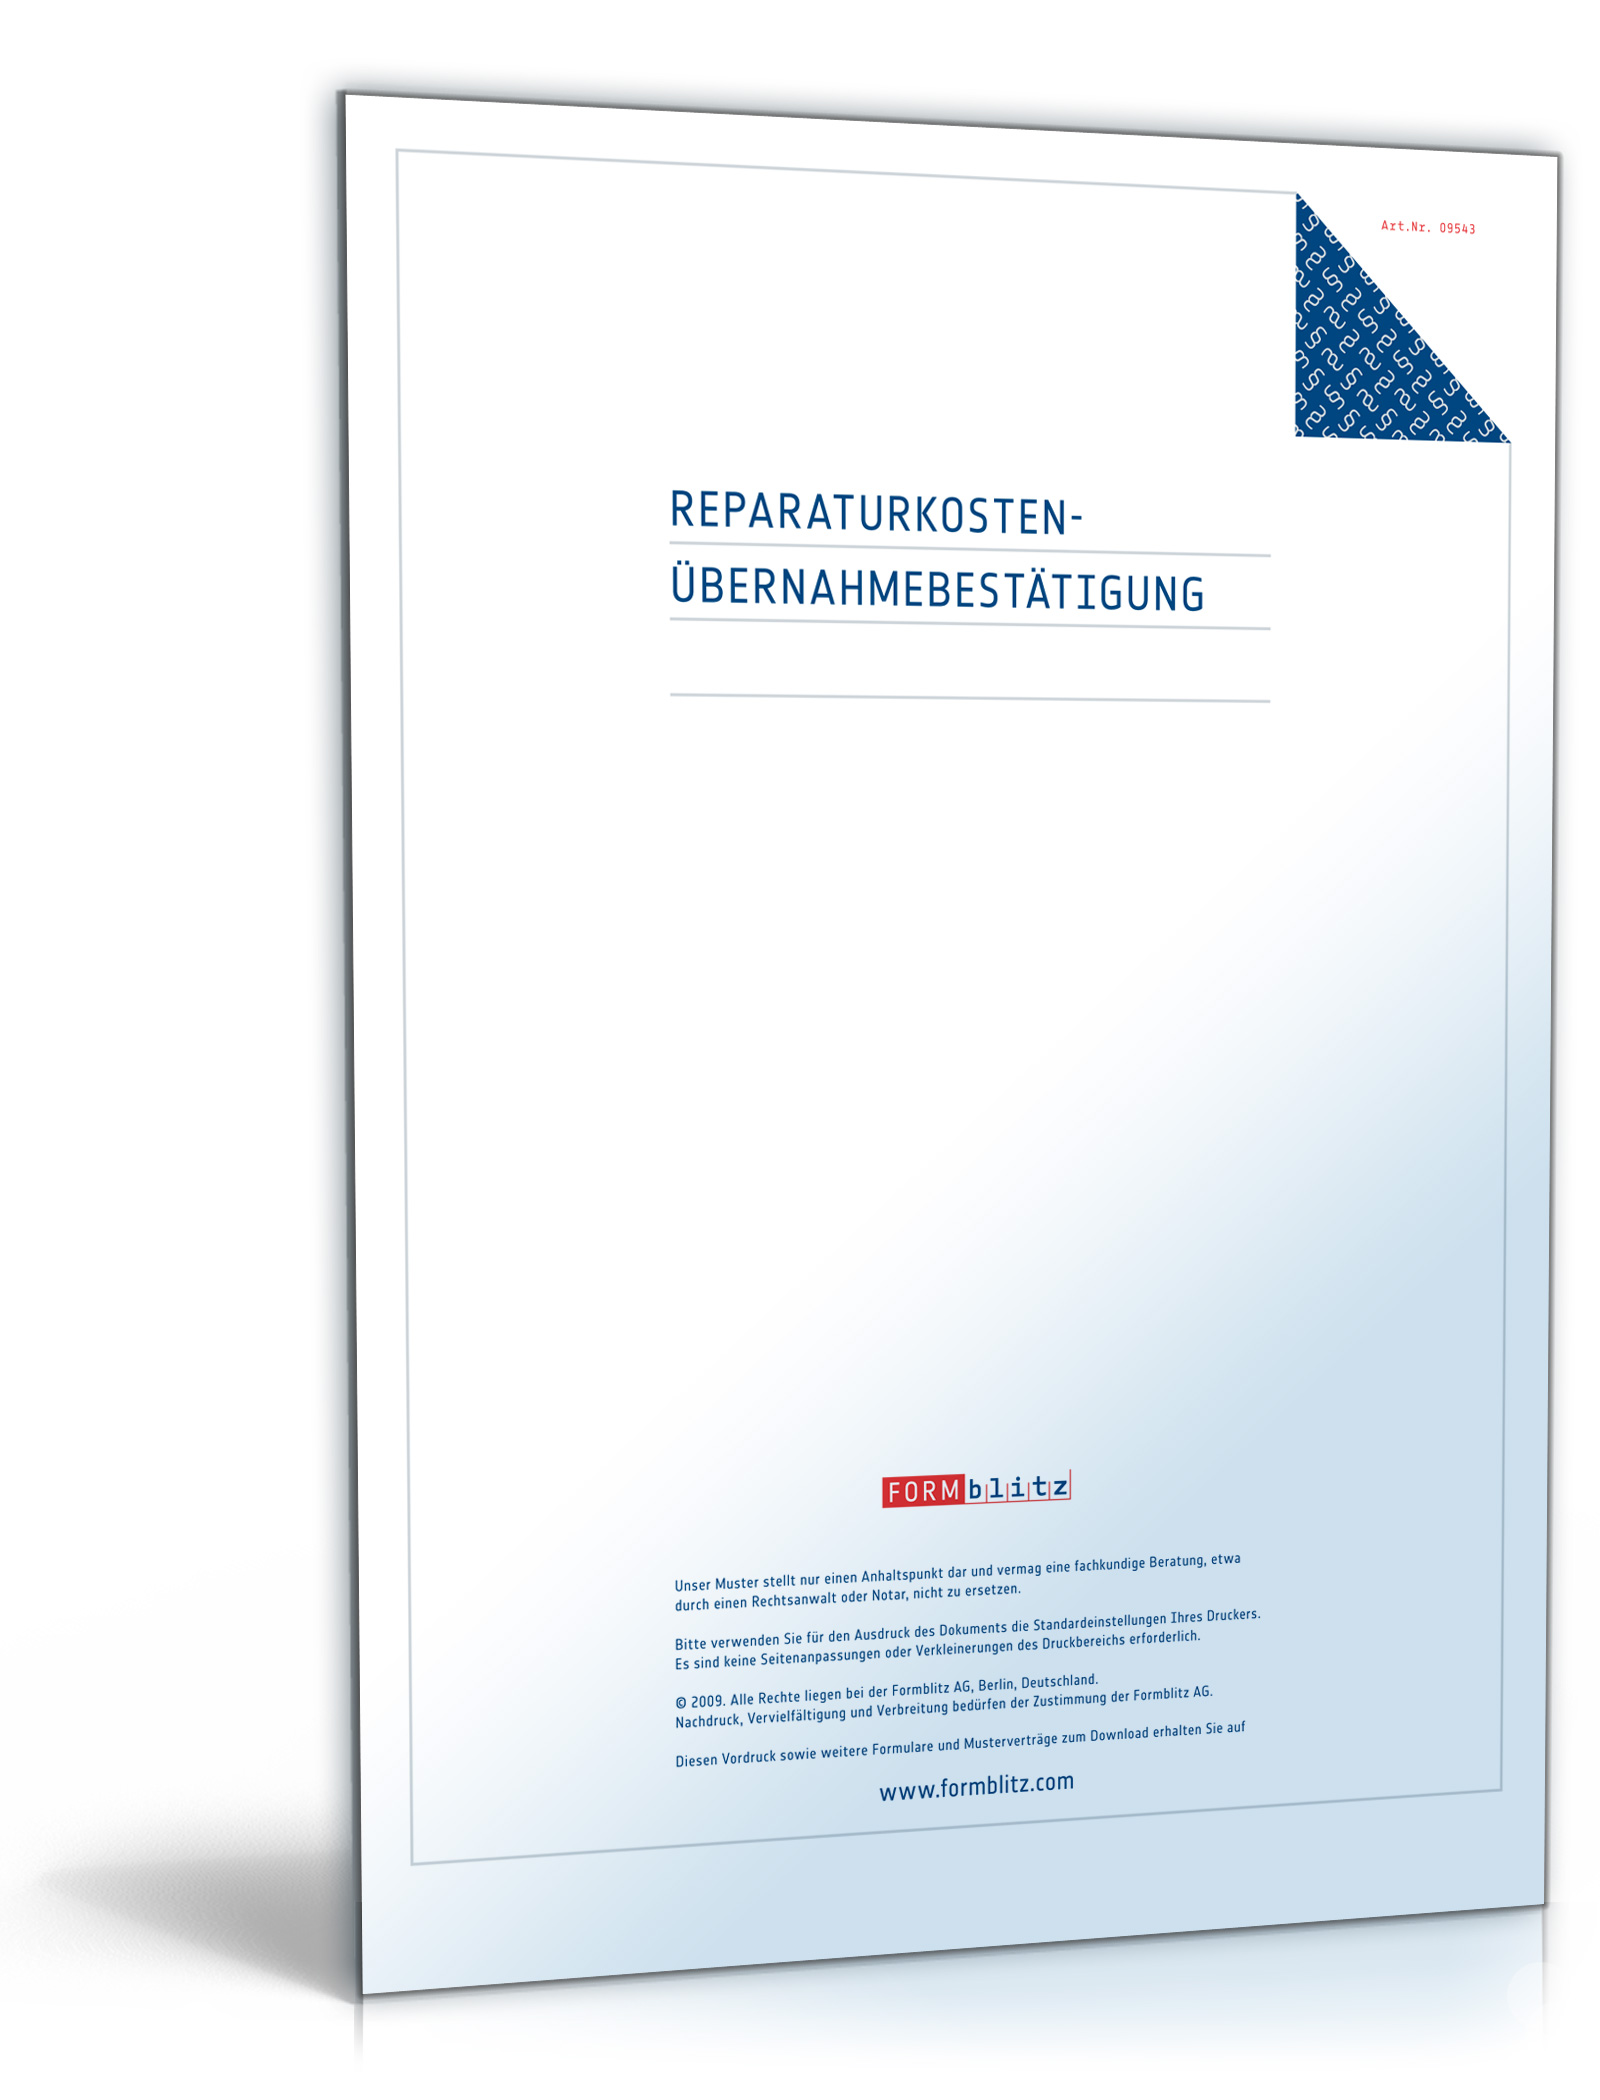 Reparaturkosten Übernahmebestätigung [PDF Download]: Amazon.de: Software